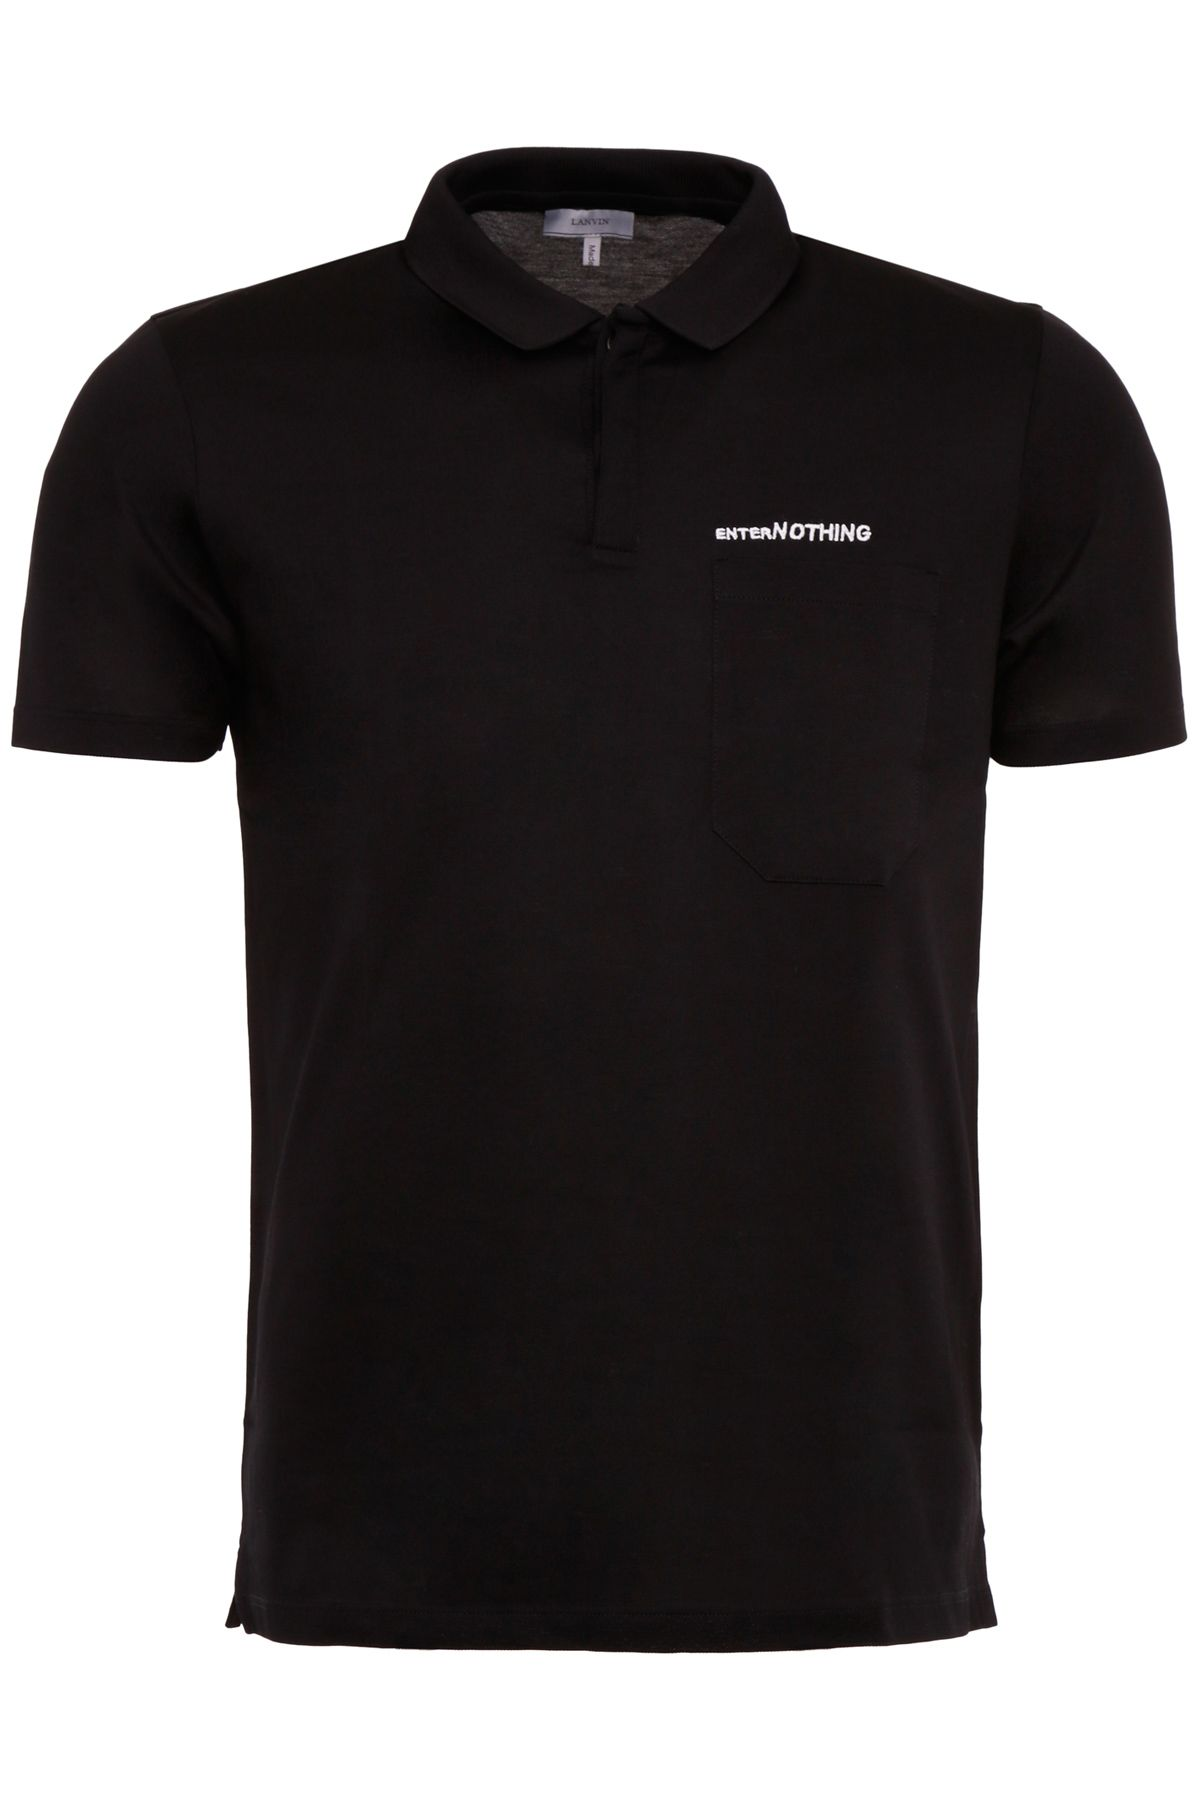 Enter Nothing Embroidered Polo Shirt